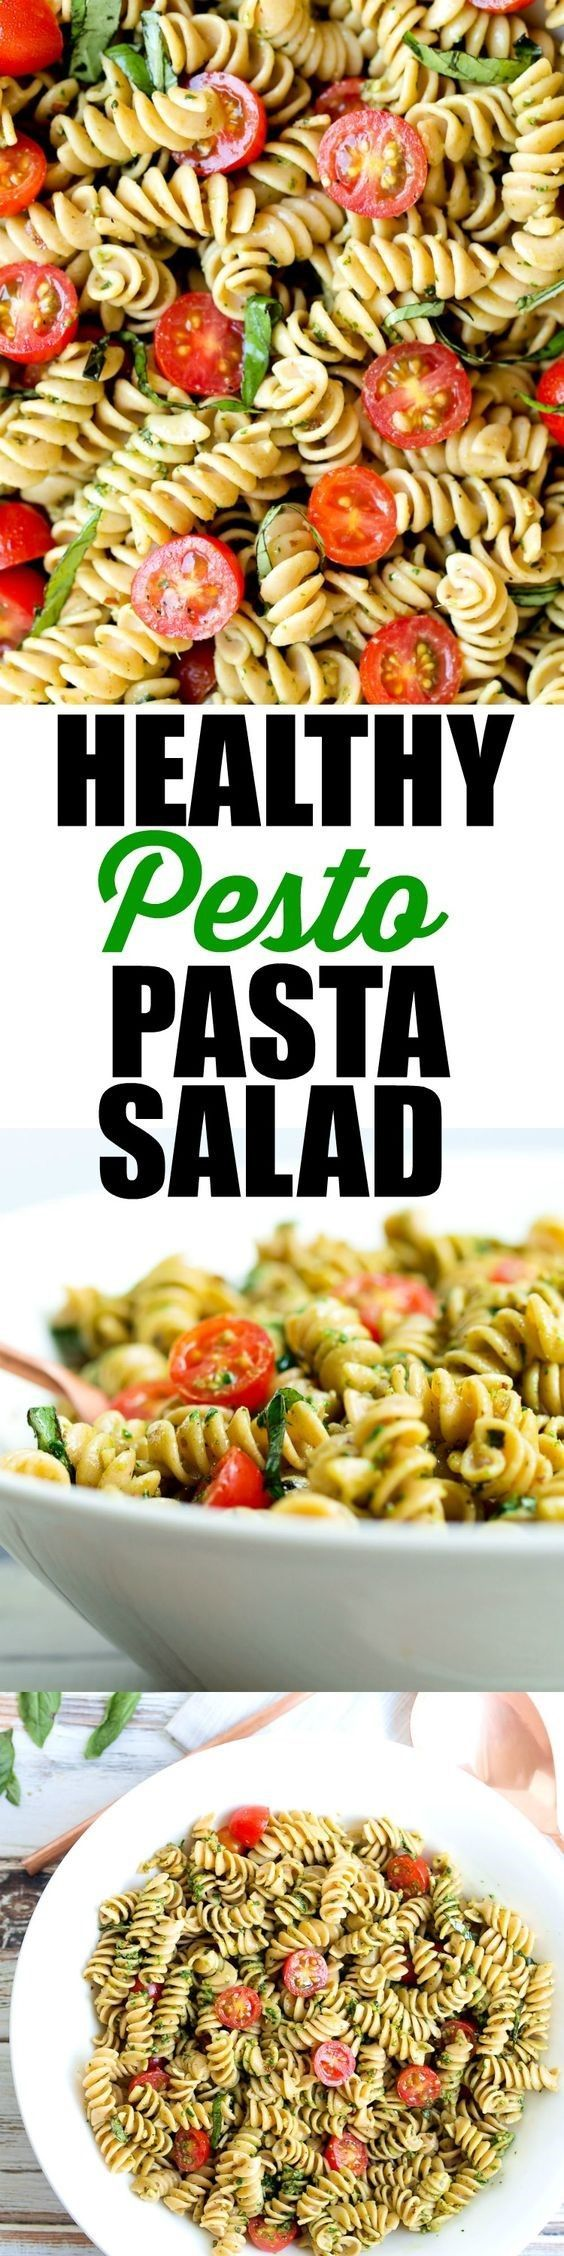 SUPER EASY Pesto Pasta Salad recipe. Yes, pasta salad can be healthy! Just over 300 calories per serving and only real food ingredients. Make this for your next potluck! #pastafoodrecipes